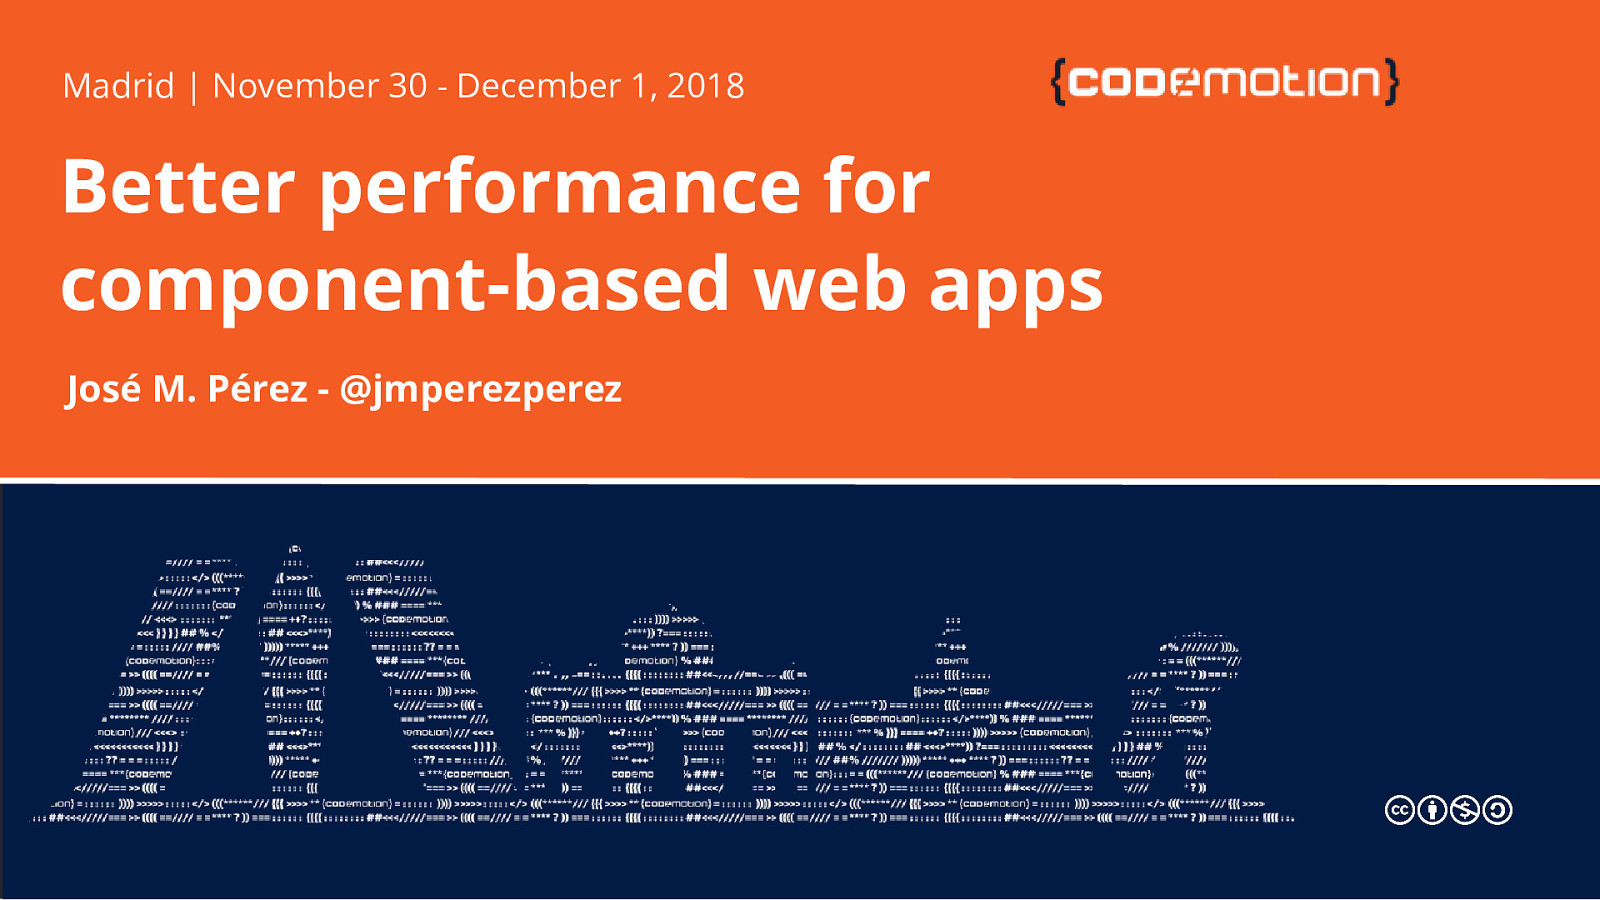 Better performance for component-based web apps